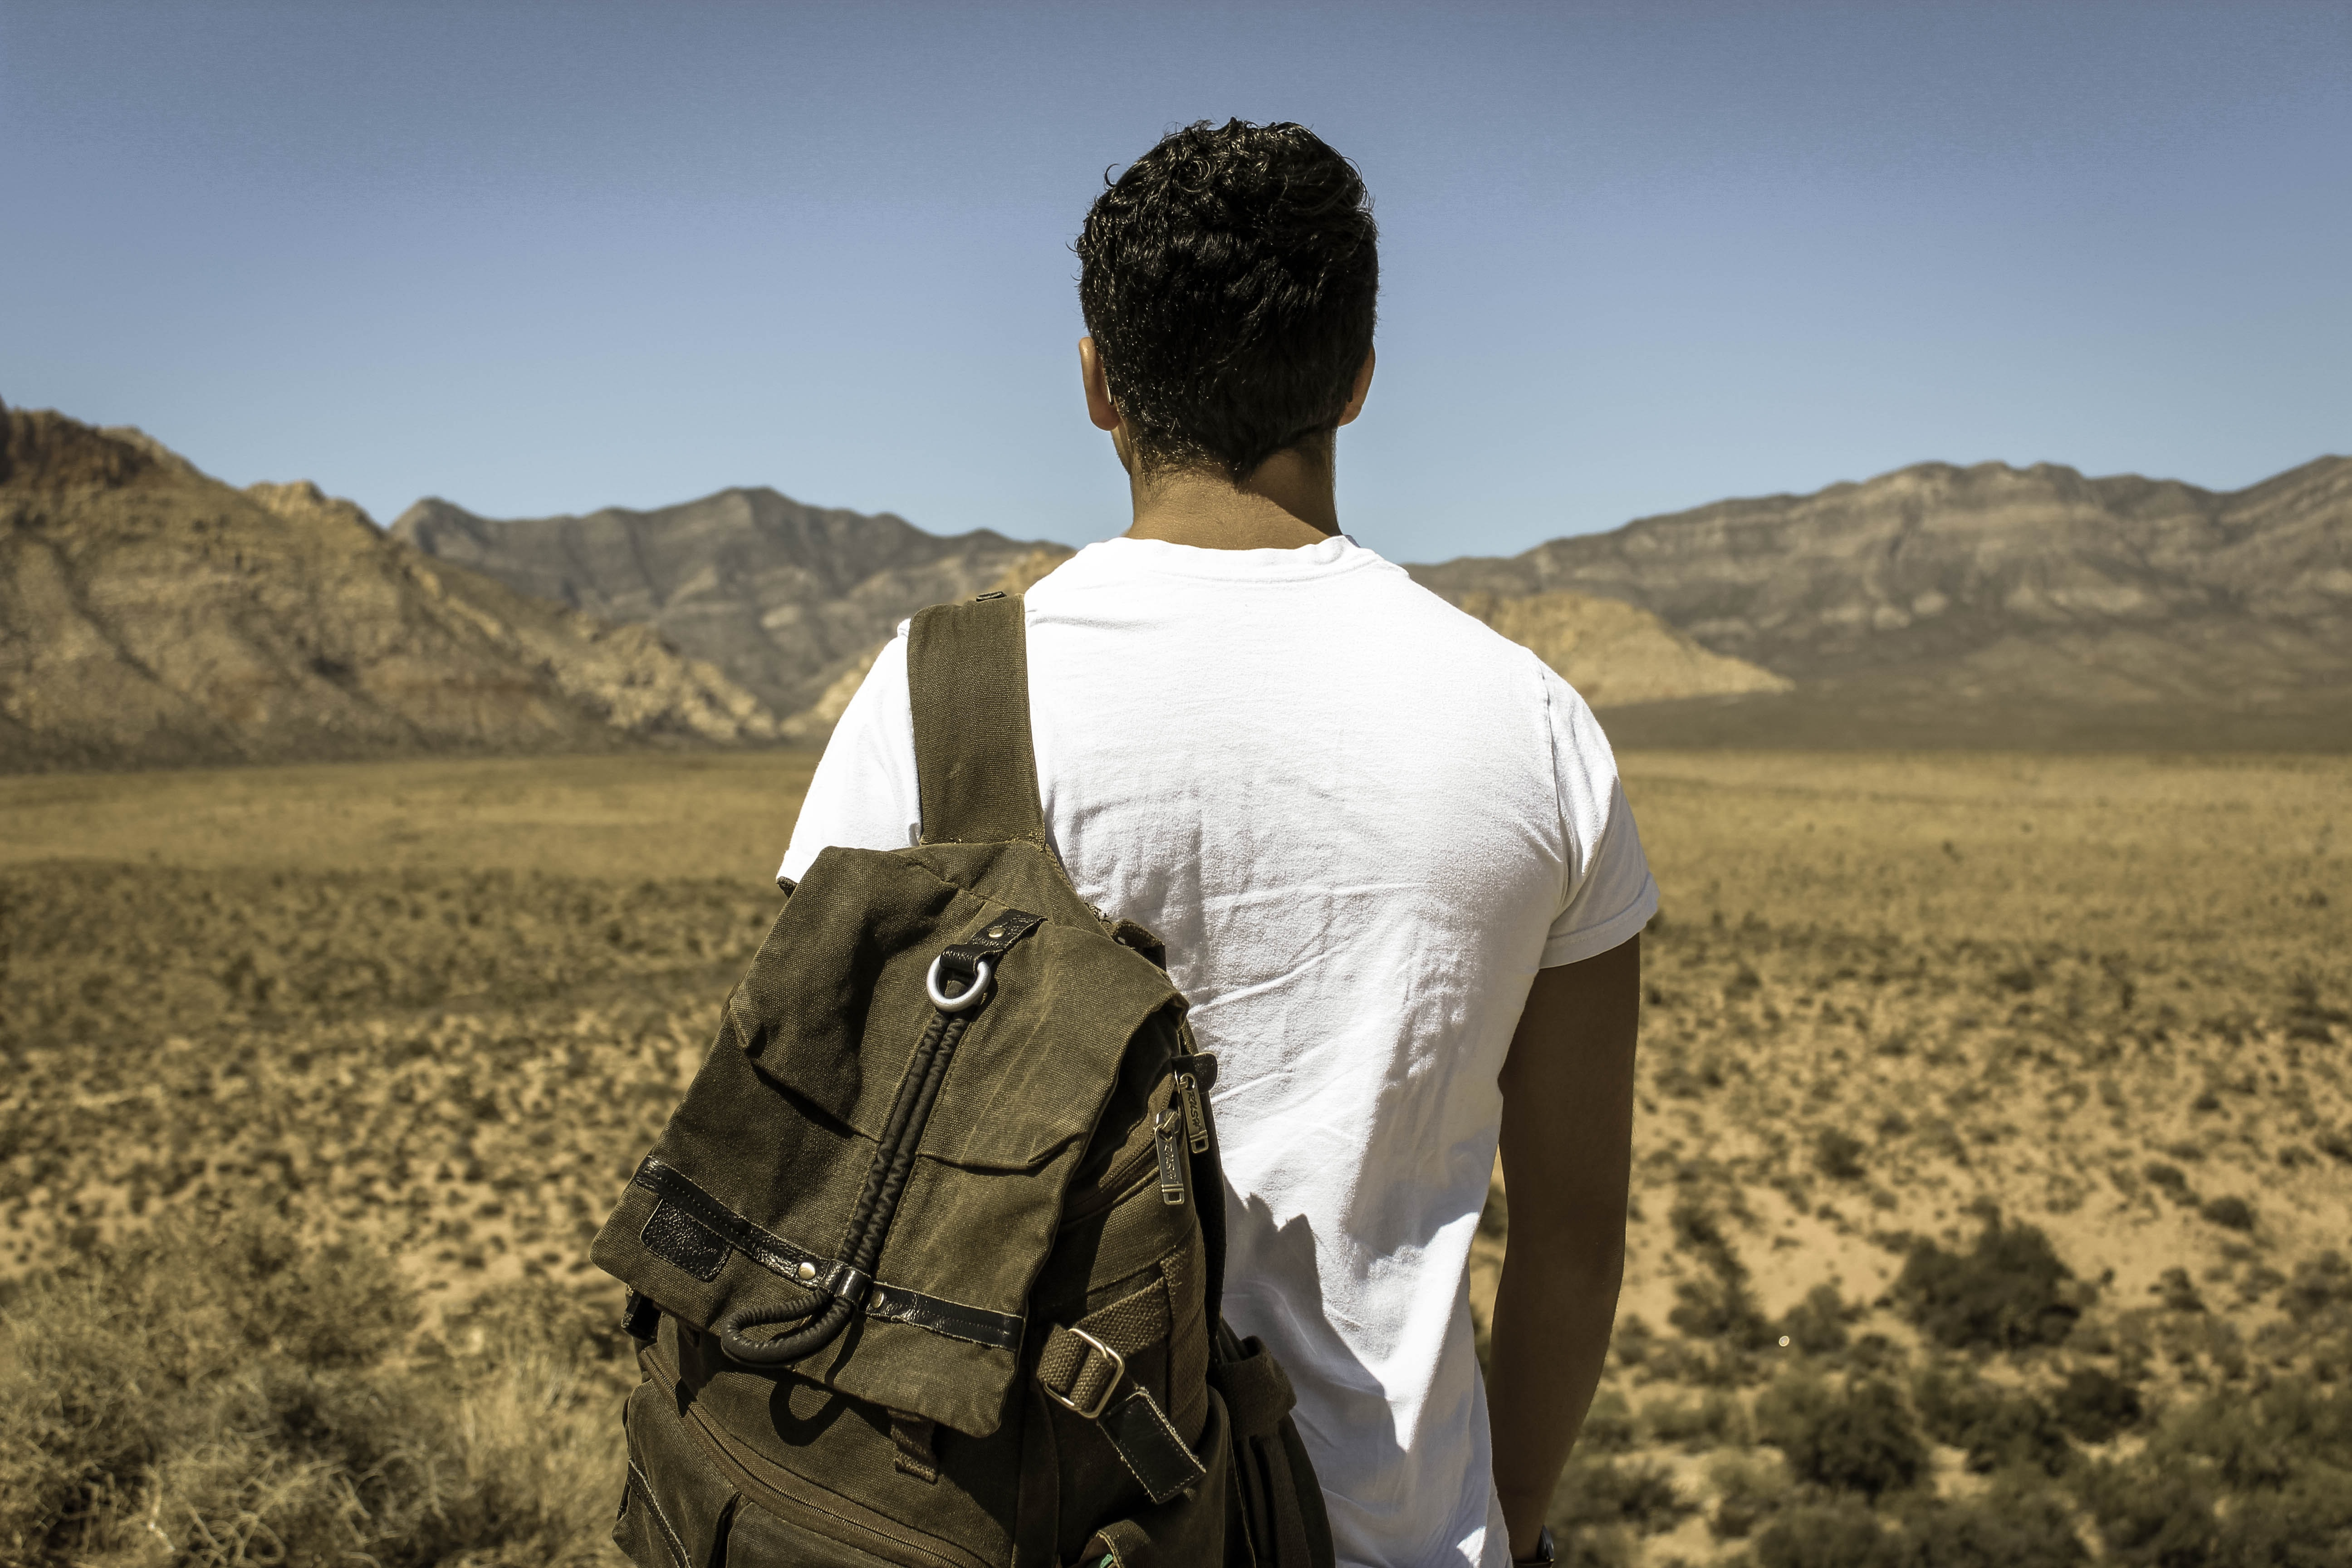 A man with a backpack on his shoulder looking at the semi-arid landscape in front of him